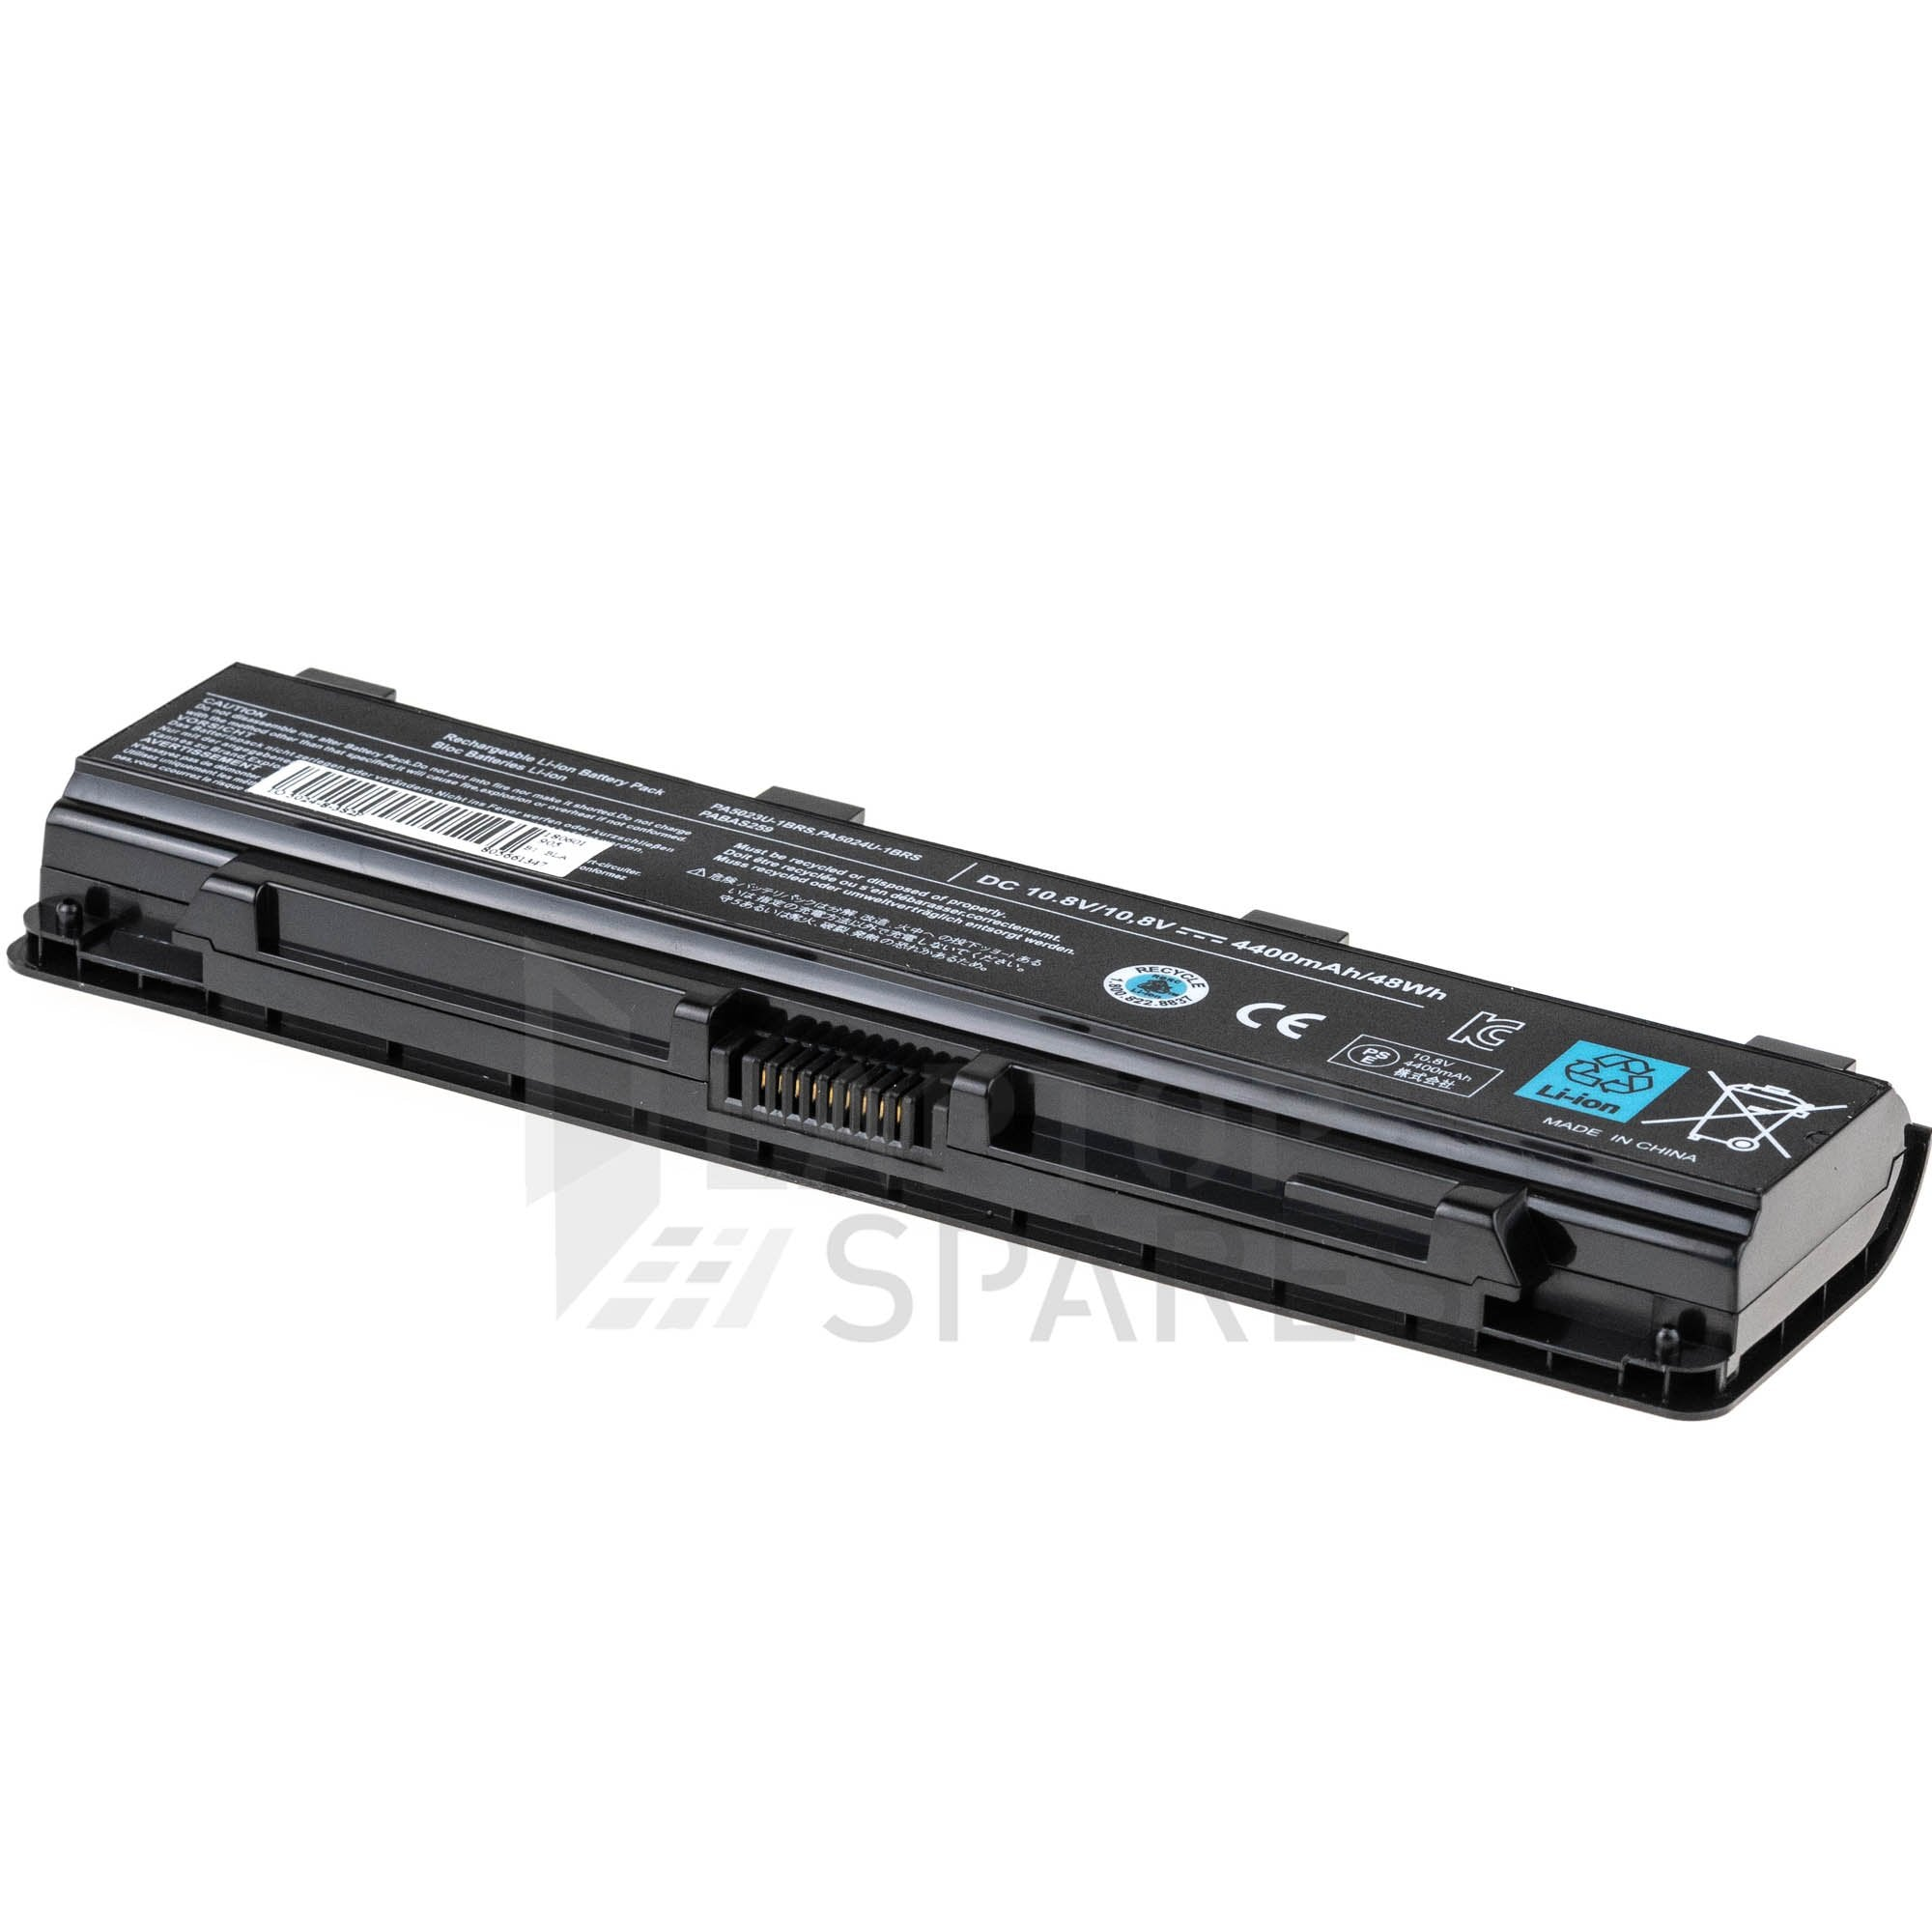 Toshiba Satellite Pro P855 Satellite Pro P855D 4400mAh 6 Cell Battery